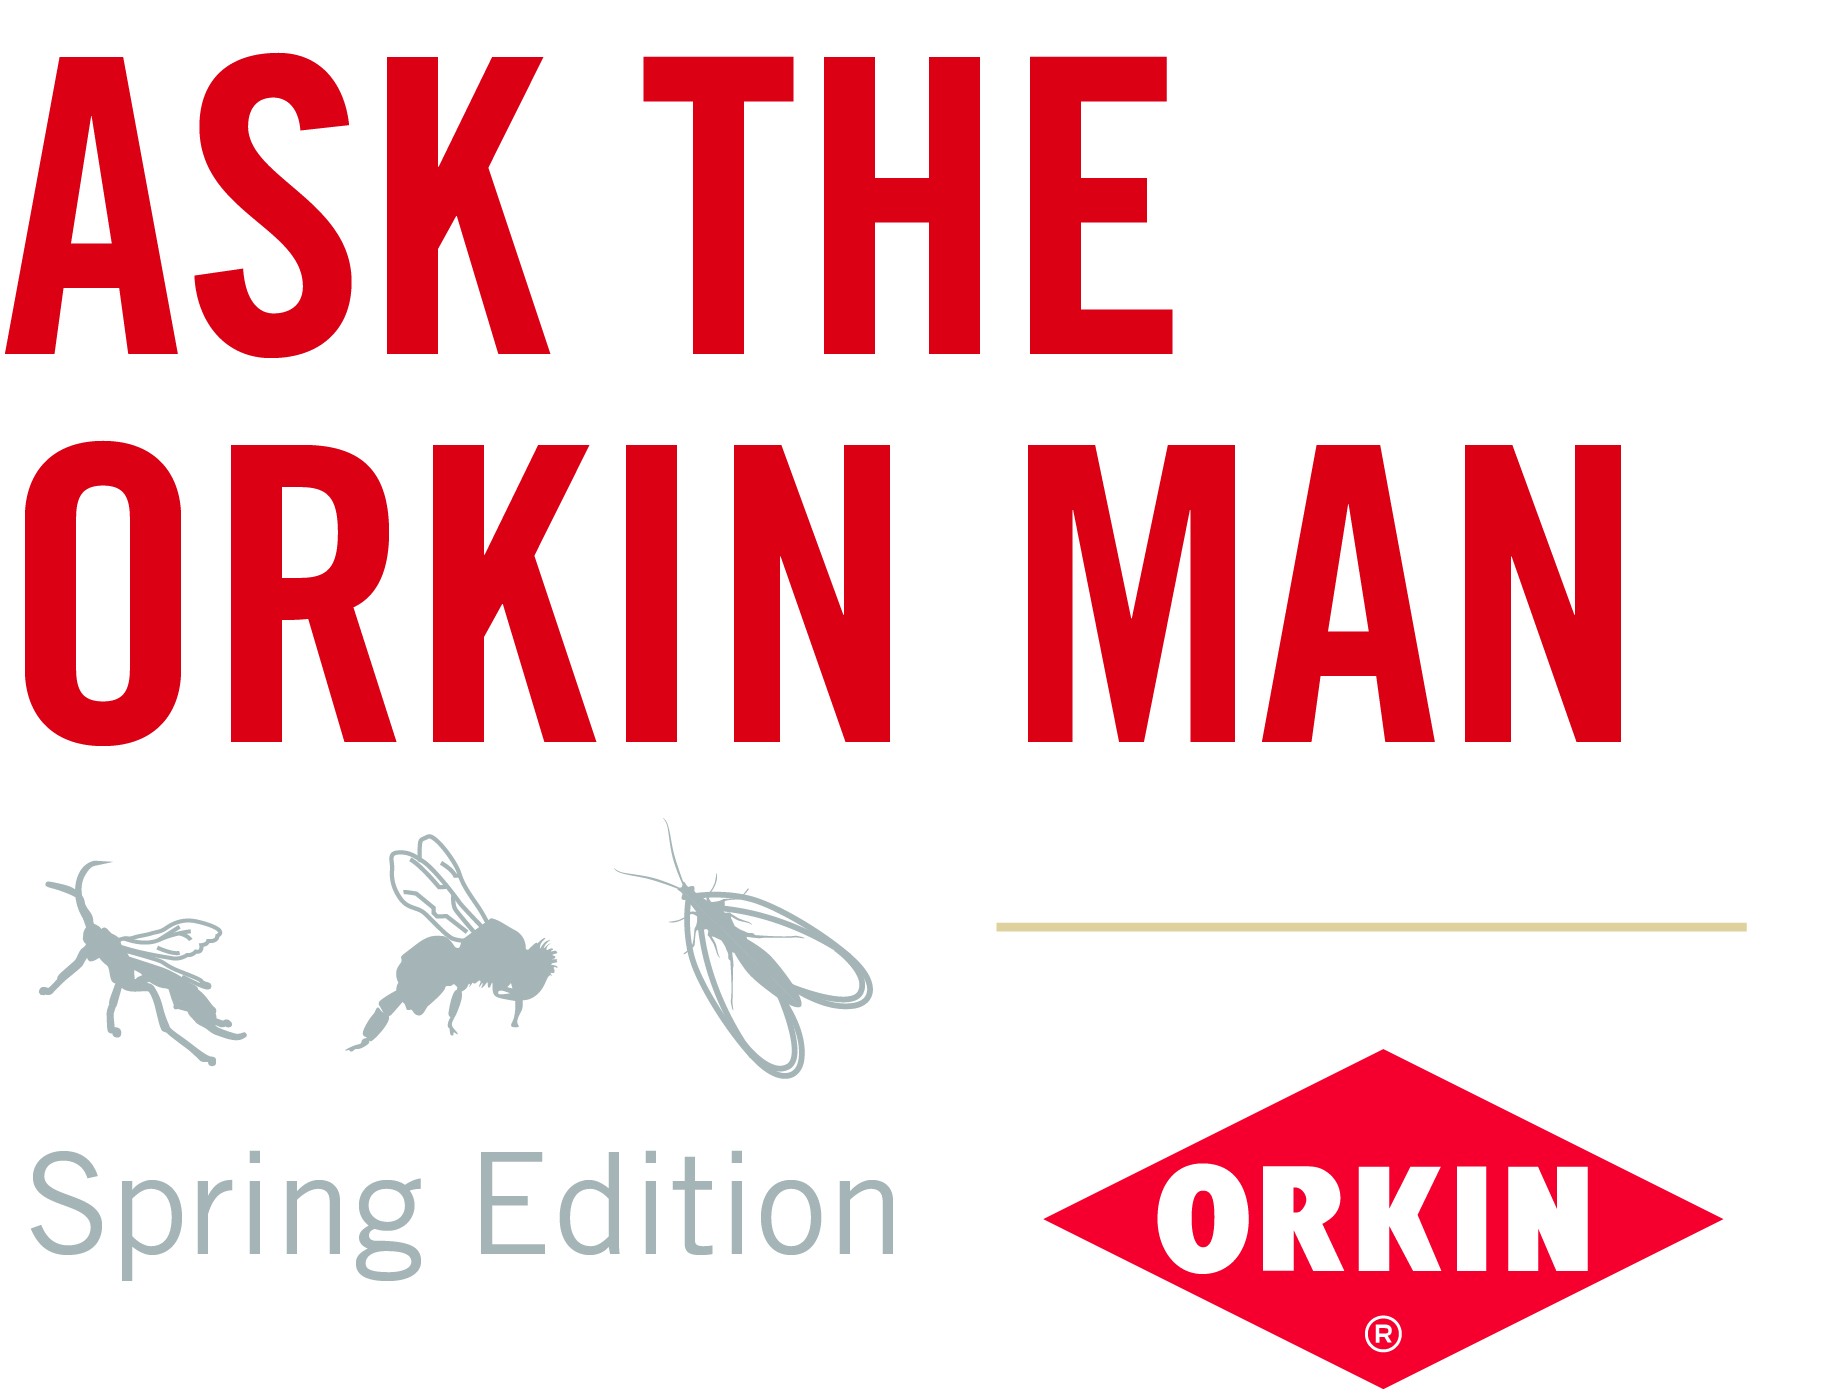 Ask the Orkin Man